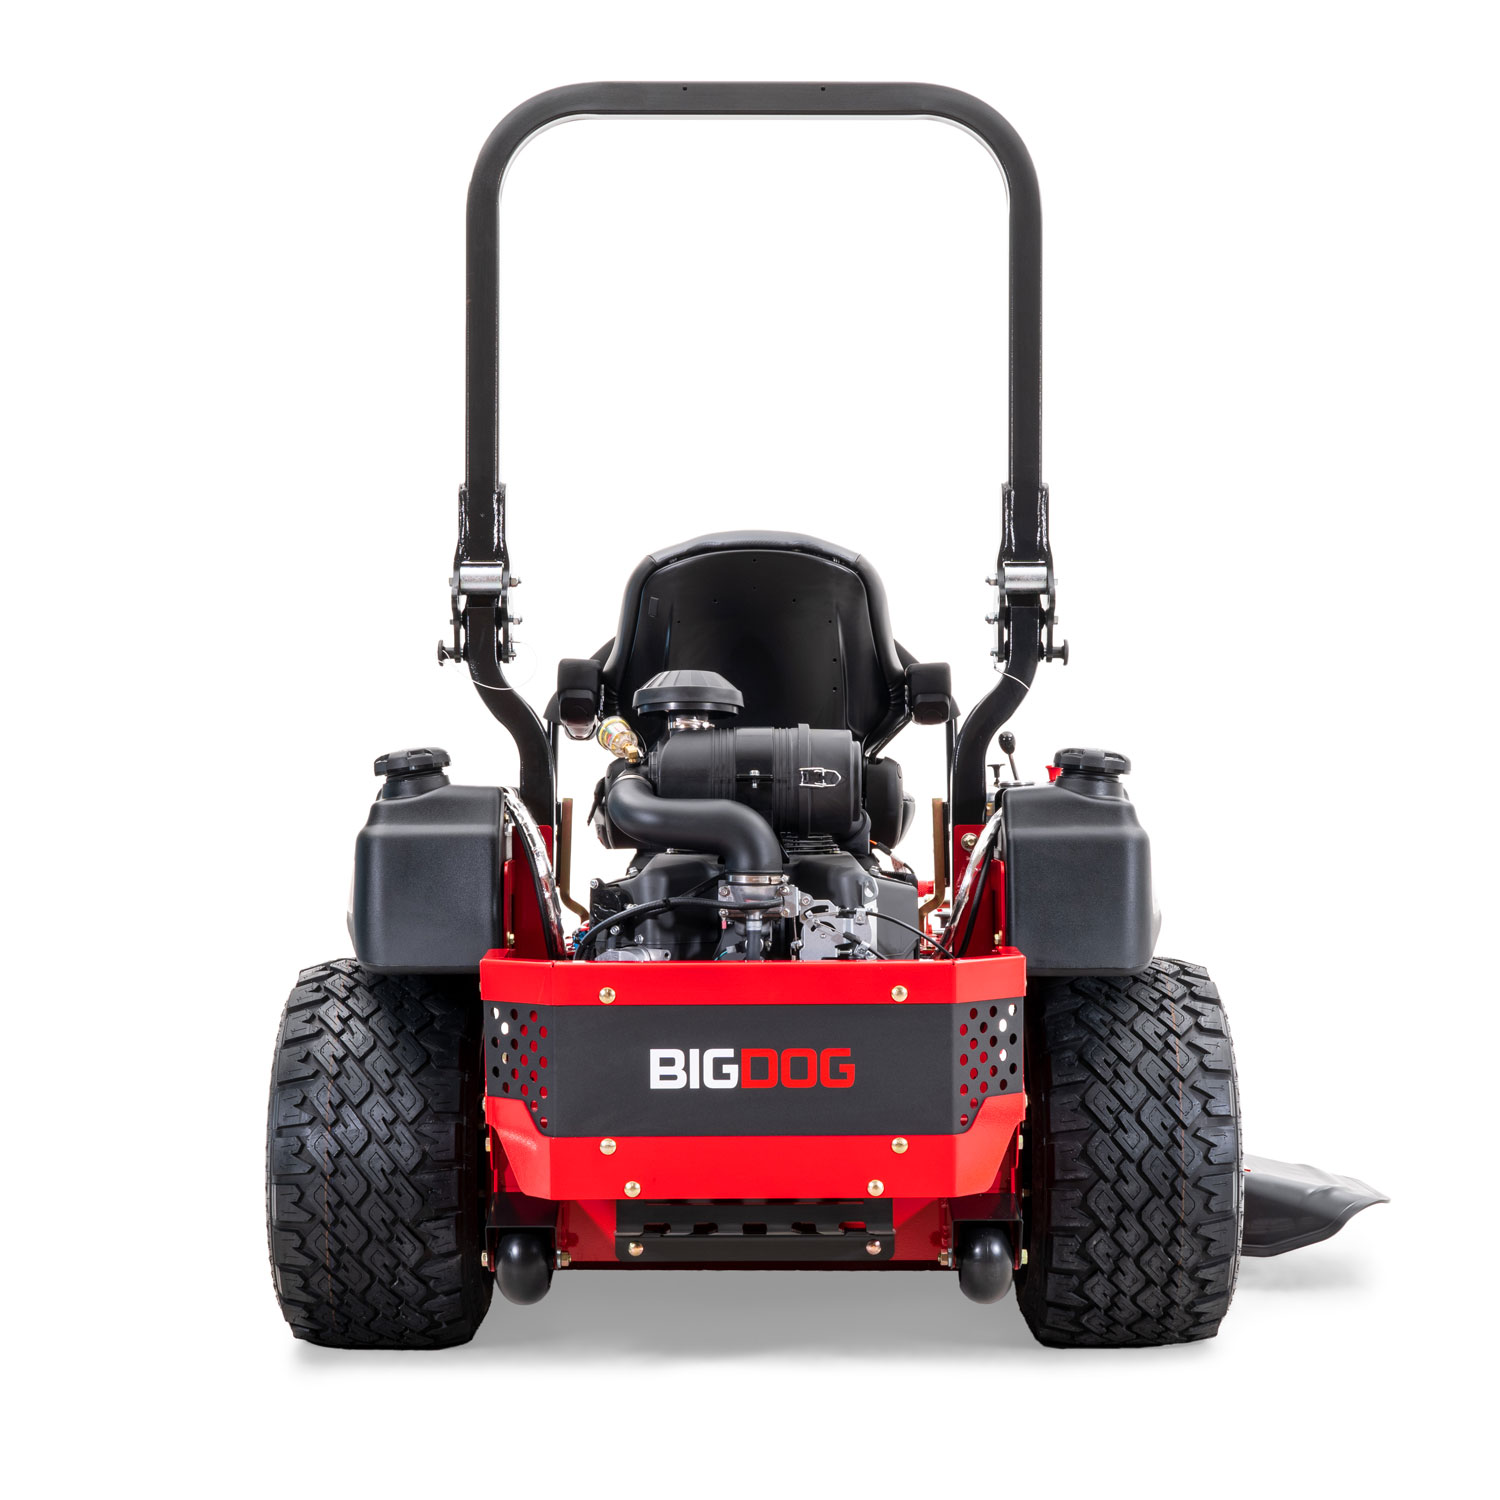 Image of the rear of a red riding mower showing the red and black engine guard